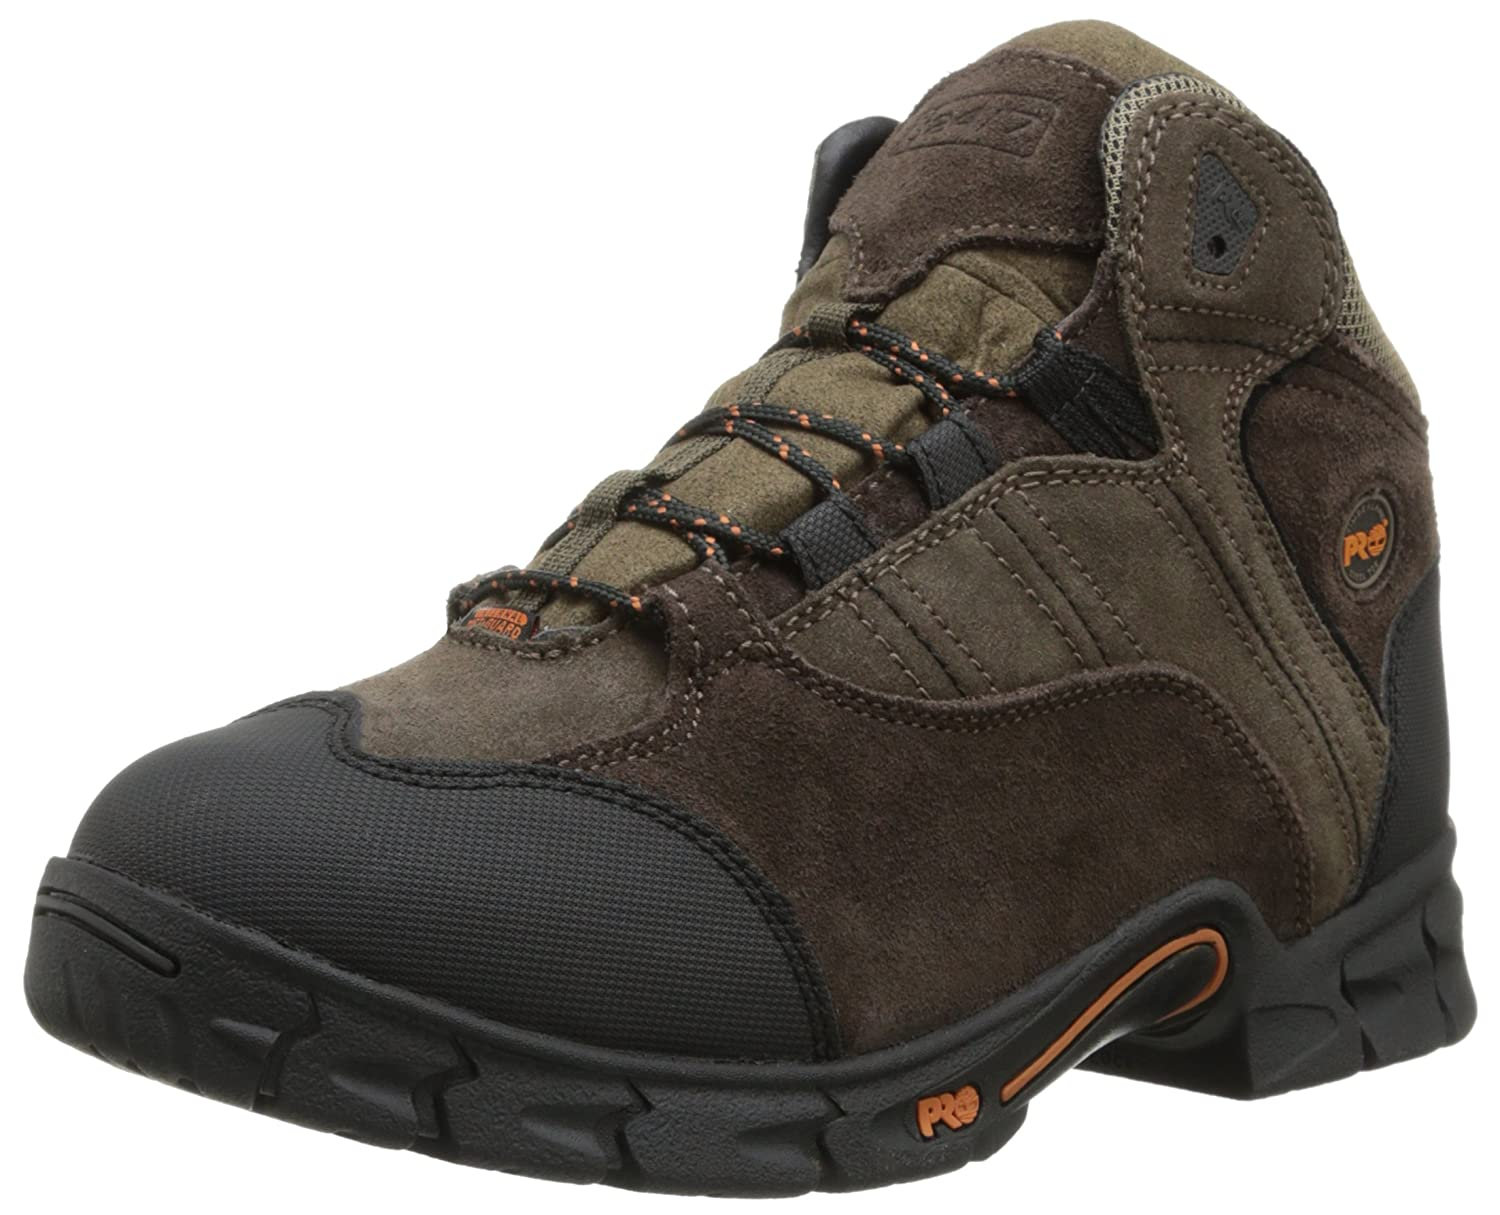 Timberland Pro Mens Excave Internal Met Guard Work Cut Engineer Shoes Safety Boots Iron Suede Leather Soft Brown Boot Industrial Construction